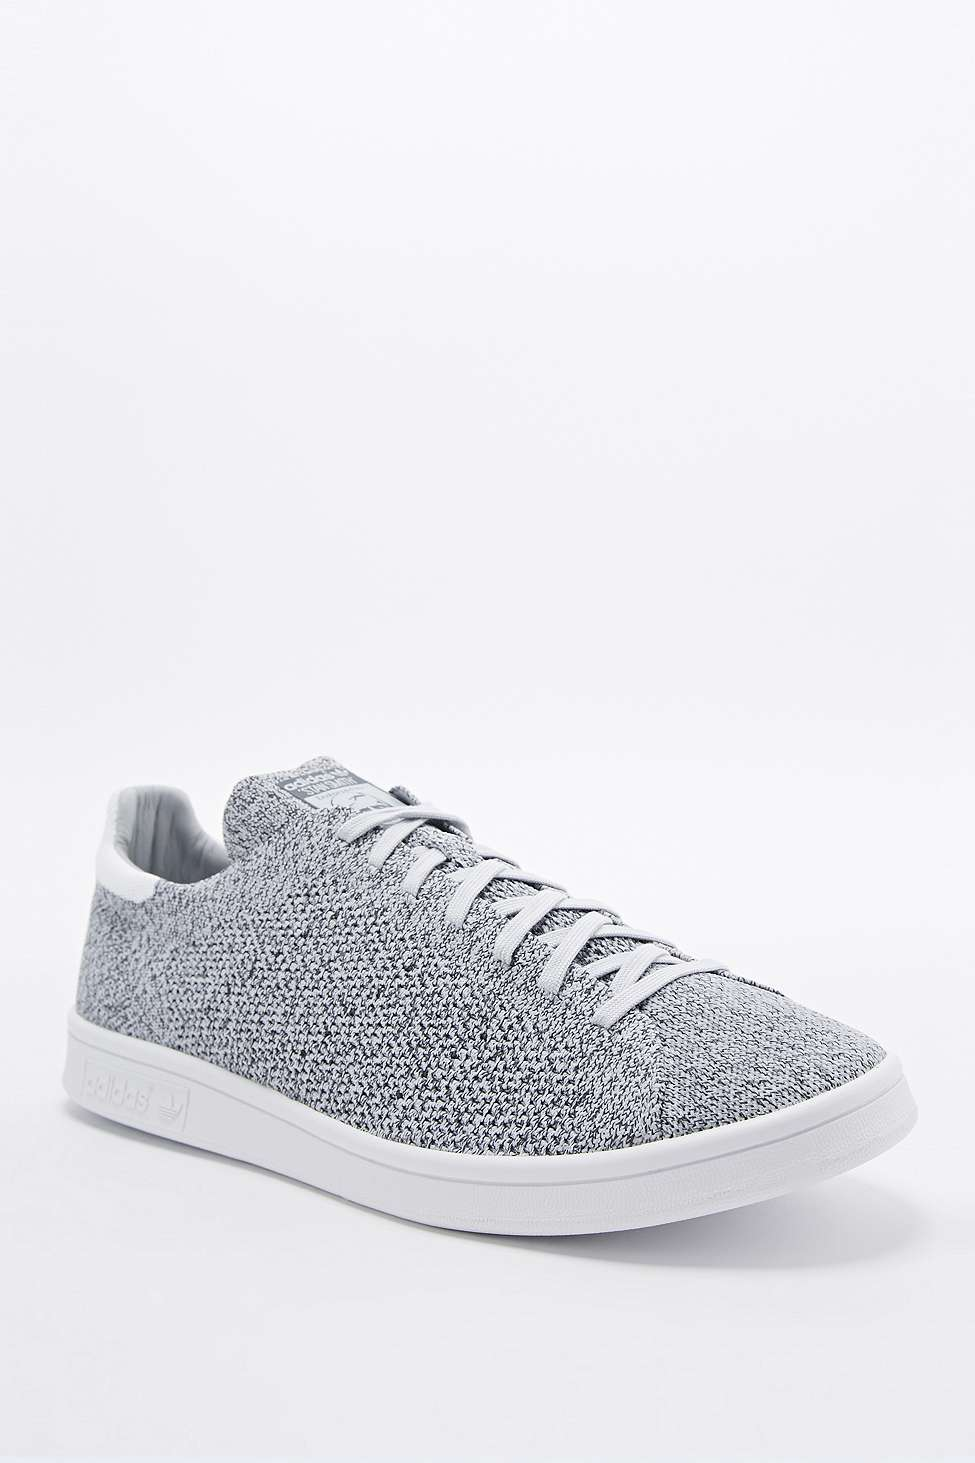 f8ba16a975000 Adidas Stan Smith Prime Knit Trainers in Grey Were  £95.00. Now  £65.00